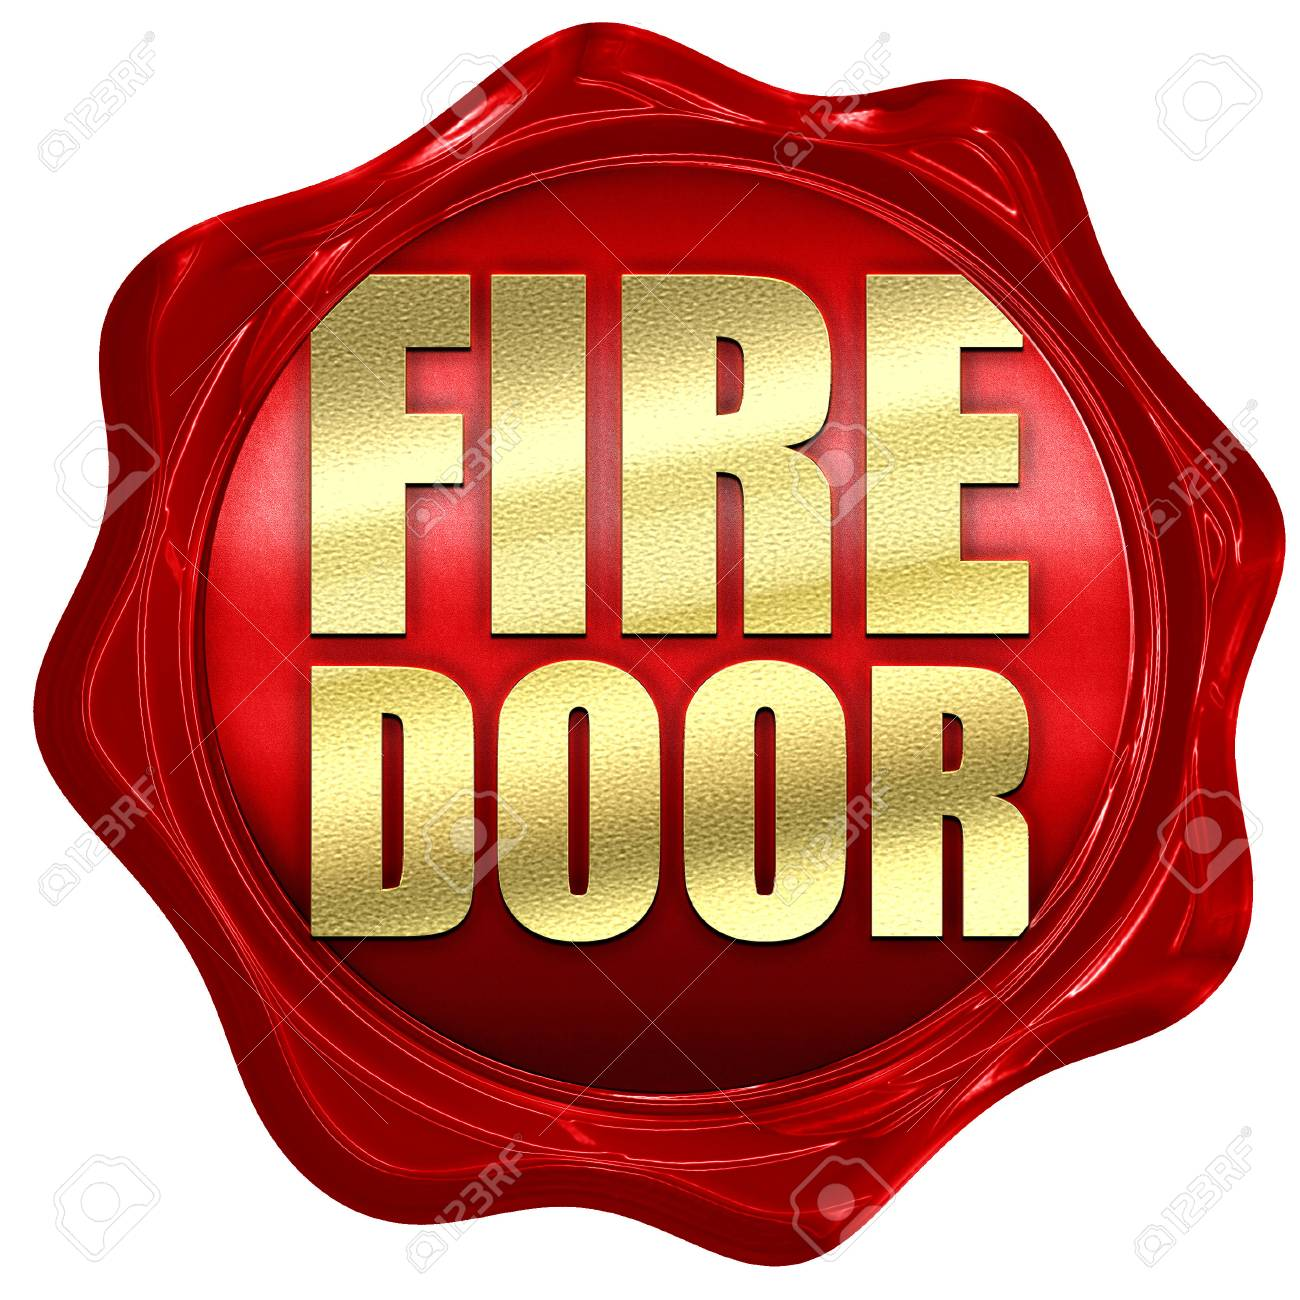 fire door 3D rendering a red wax seal Stock Photo - 57575419  sc 1 st  123RF.com & Fire Door 3D Rendering A Red Wax Seal Stock Photo Picture And ...